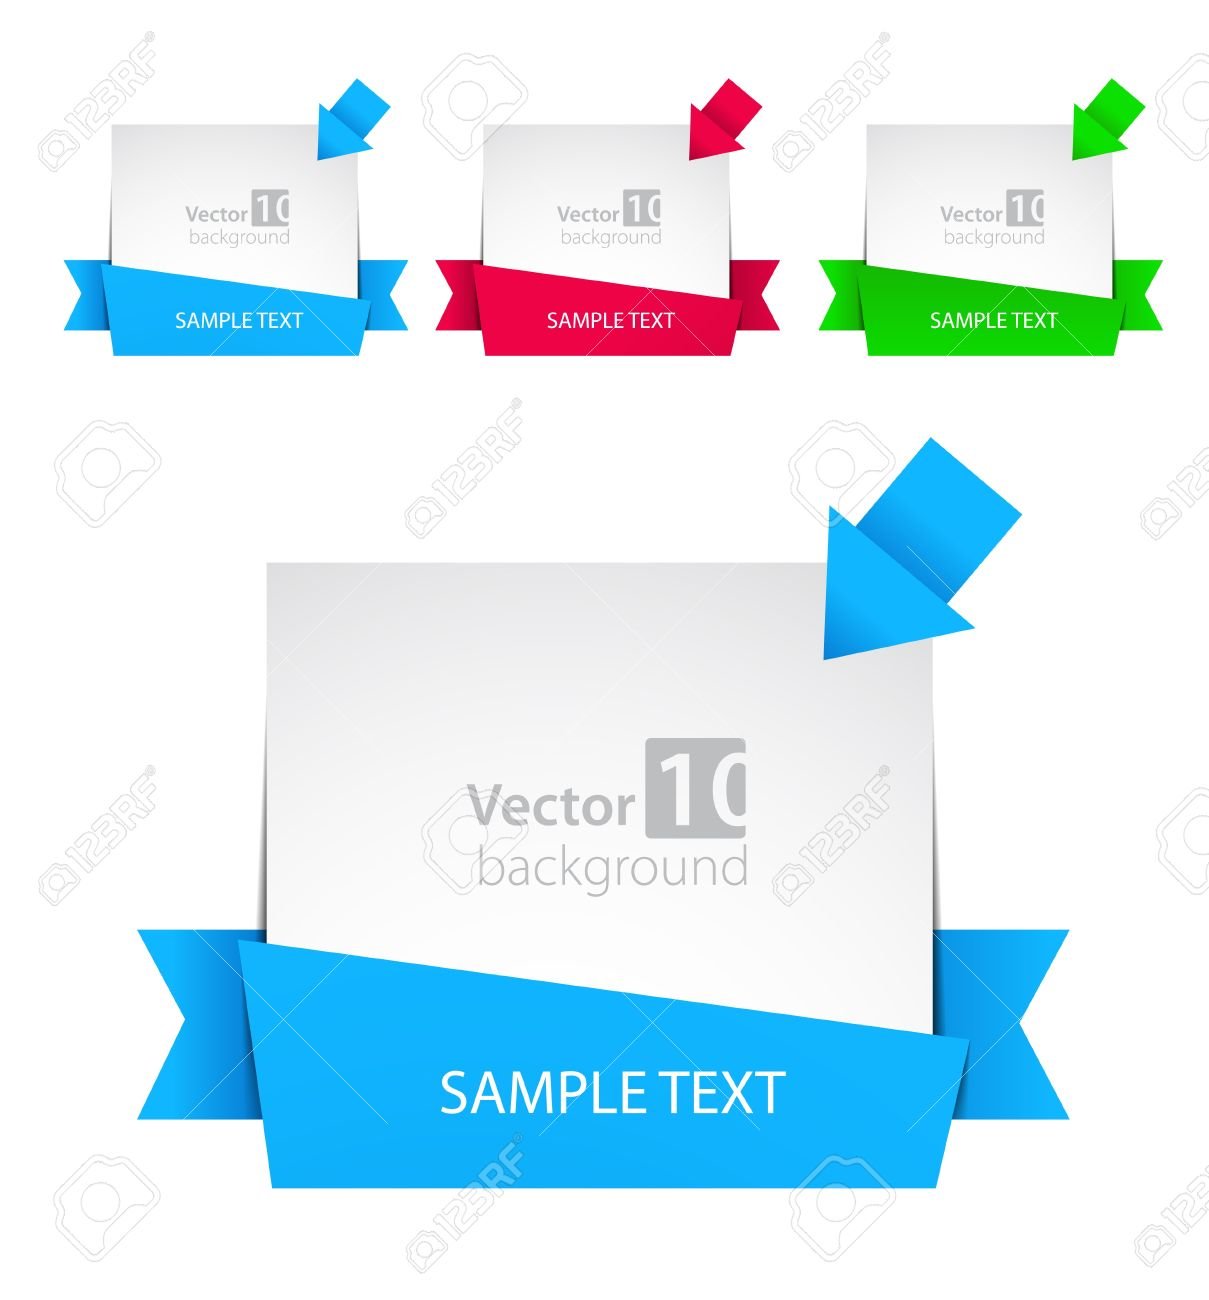 Design vector banner - Vector Banner With Ribbon And Color Arrows Stock Vector 12470322